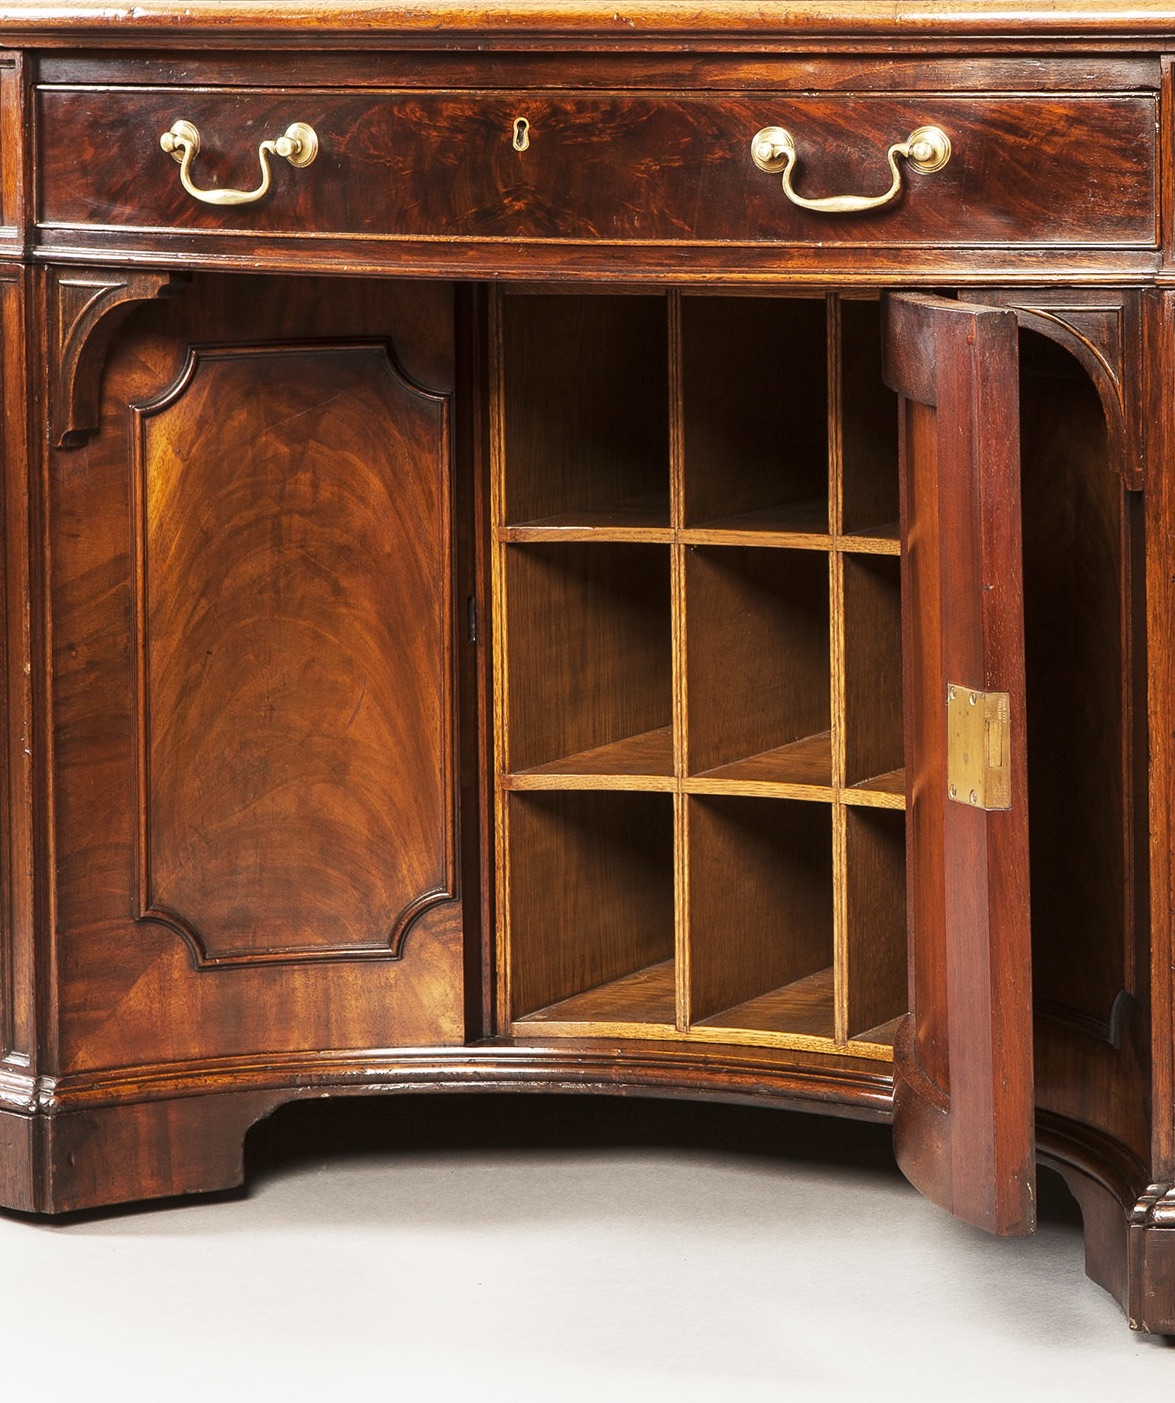 9068 Mahogany Oval Desk in the Georgian Manner draws copy